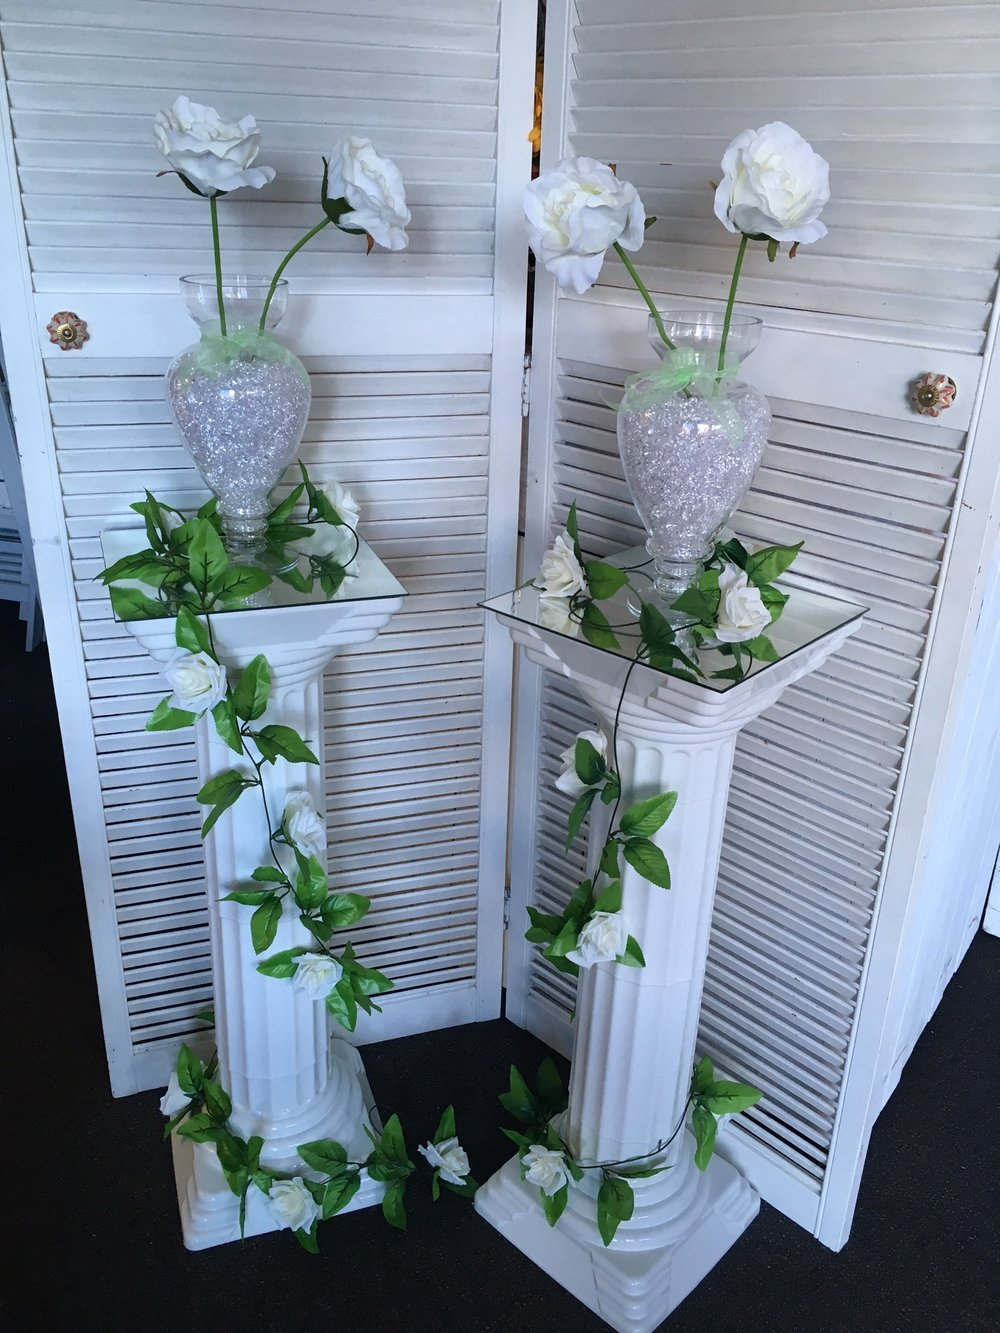 White PVC Pillars/Pedestals - Hire 2 for $50